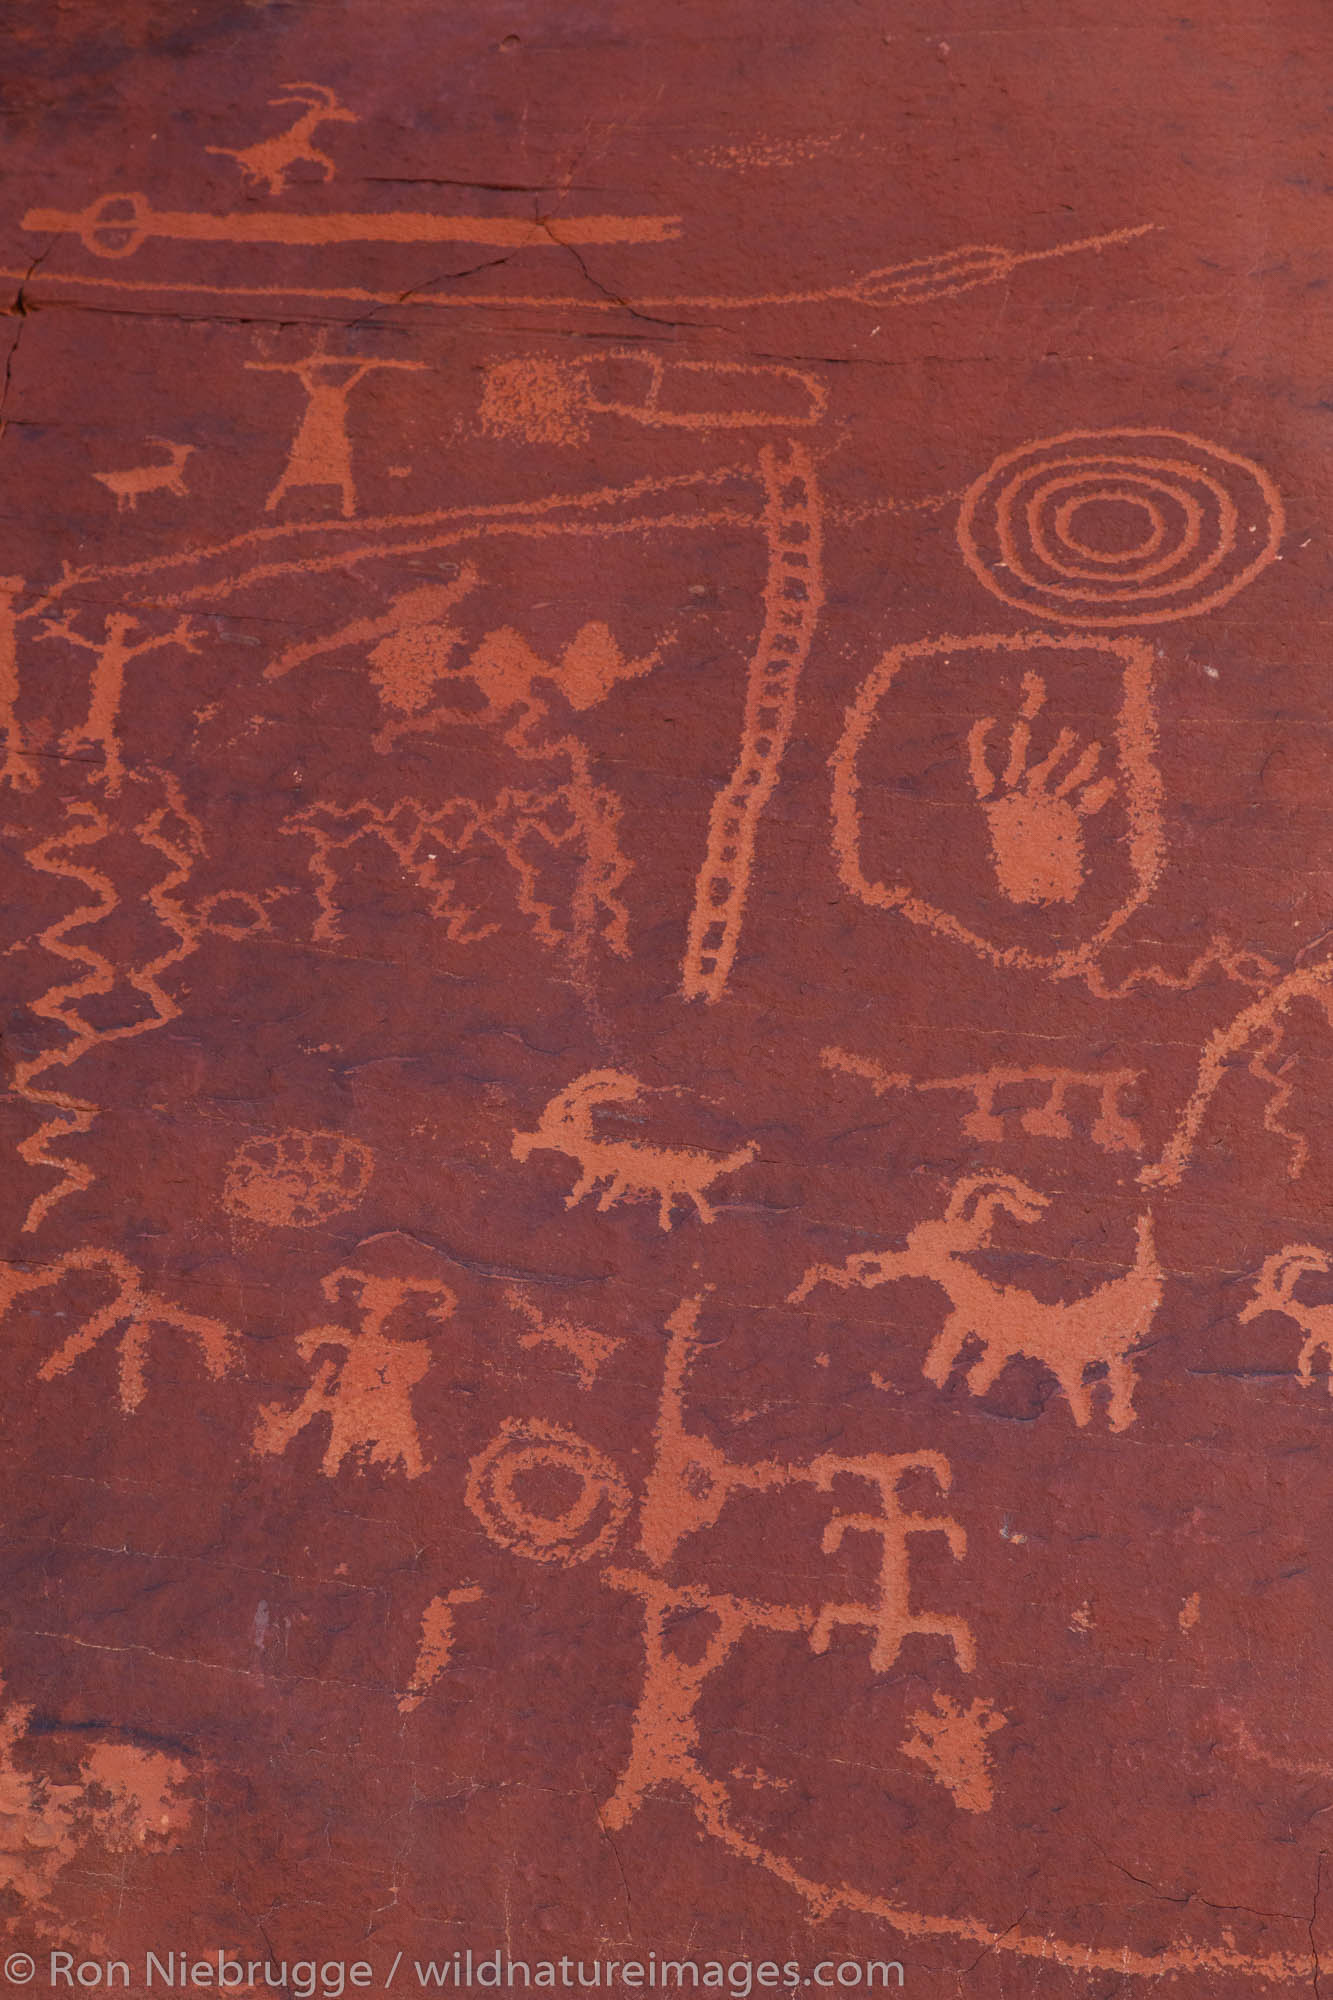 Rock art, Valley of Fire State Park, near Las Vegas, Nevada.